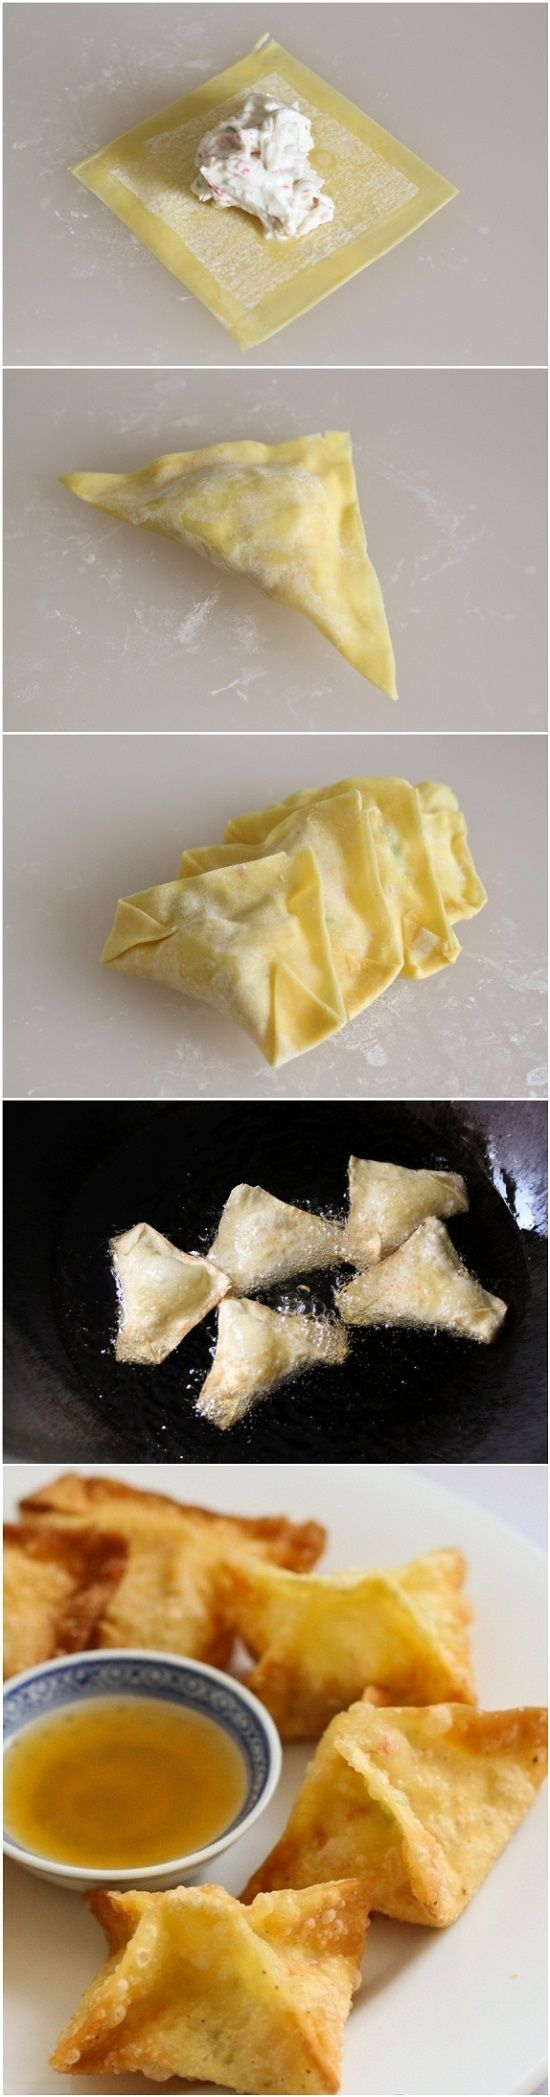 Crab Rangoon (Cheese Wonton)     1 pkg. wonton wrapper, water.     For Cheese Filling:     ½ lb imitation crab sticks or lump crab meat,     8 oz. cream cheese, softened in room temperature,     3 stalk scallions, finely chopped,     1 tsp Worchester sauce,     1 tsp soy sauce or ½ tsp salt,     1 tsp. sugar.